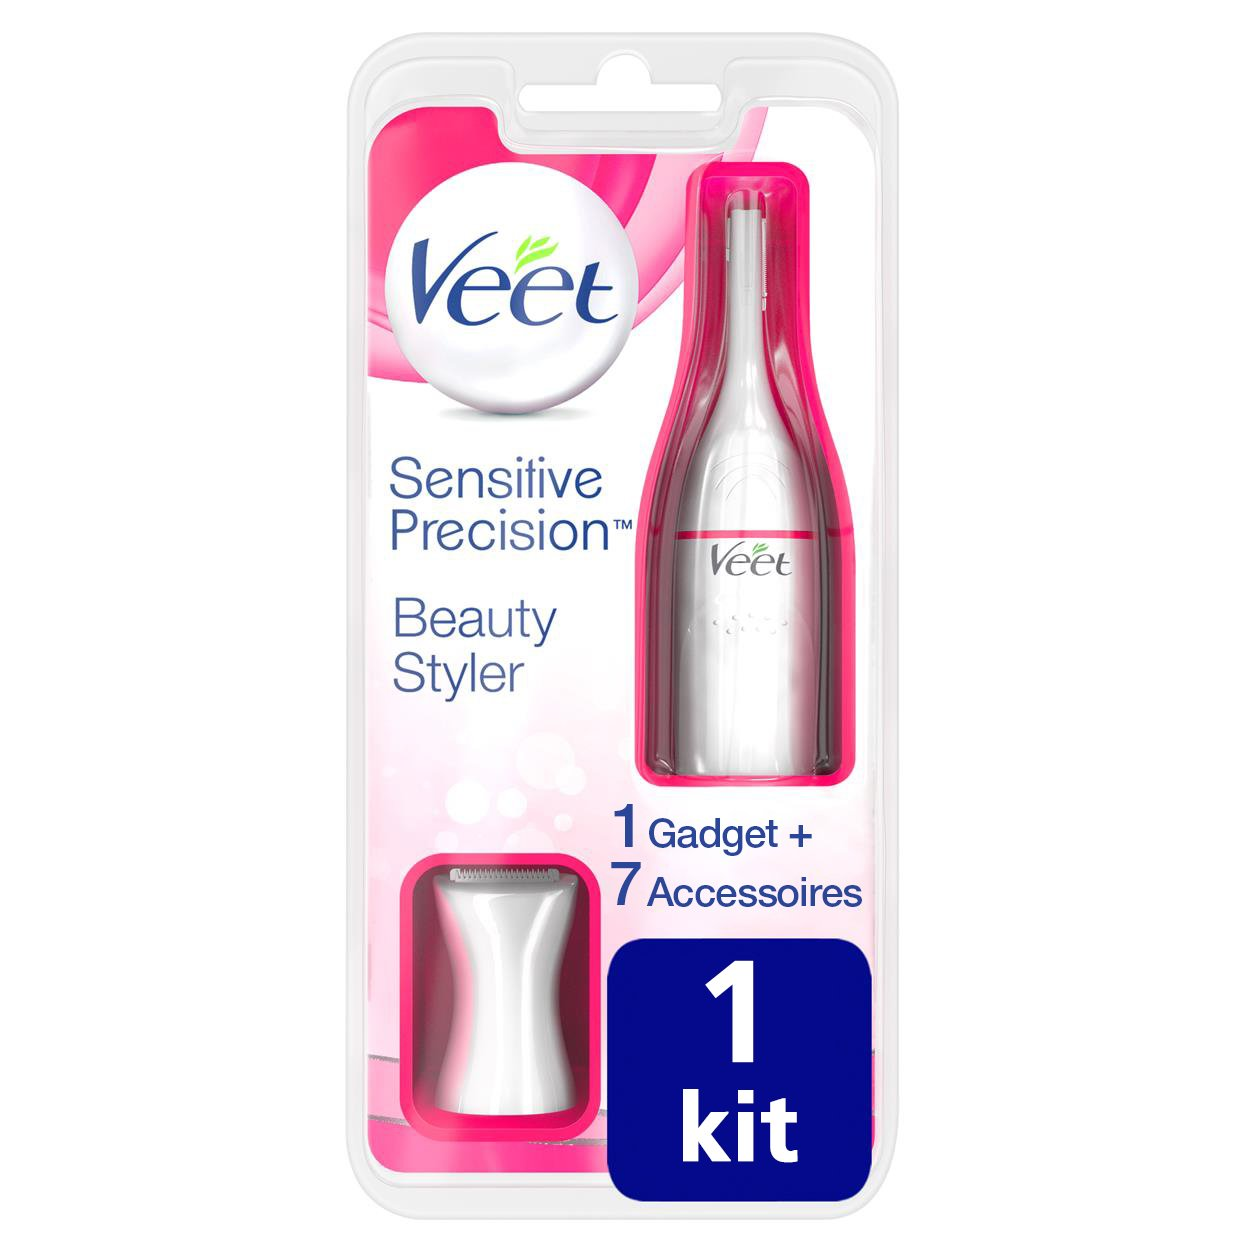 VEET Sensitive Precision Beauty 3059944011624